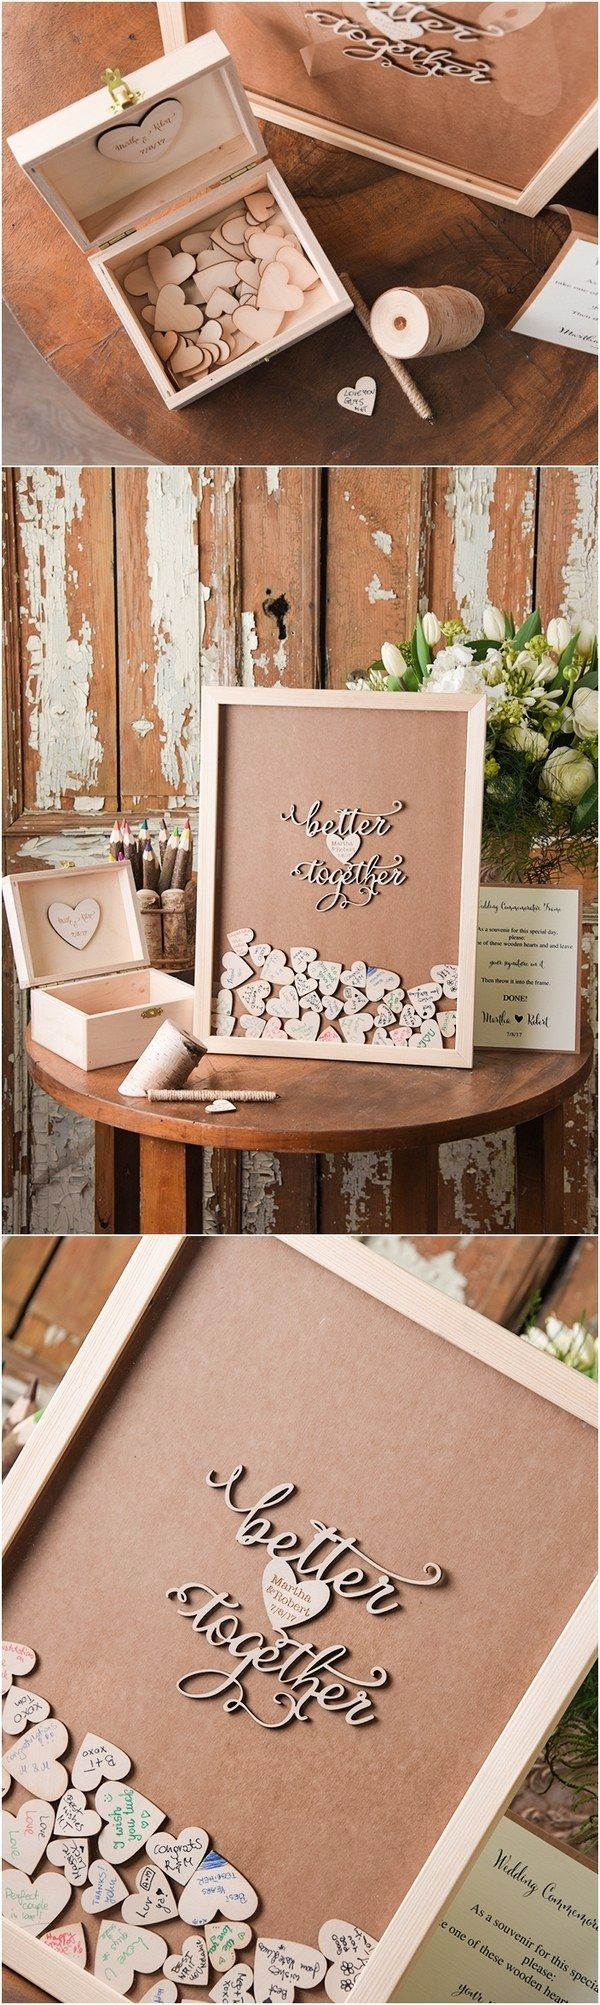 Rustic Laser Cut Wood Wedding Guest Book- Better Together